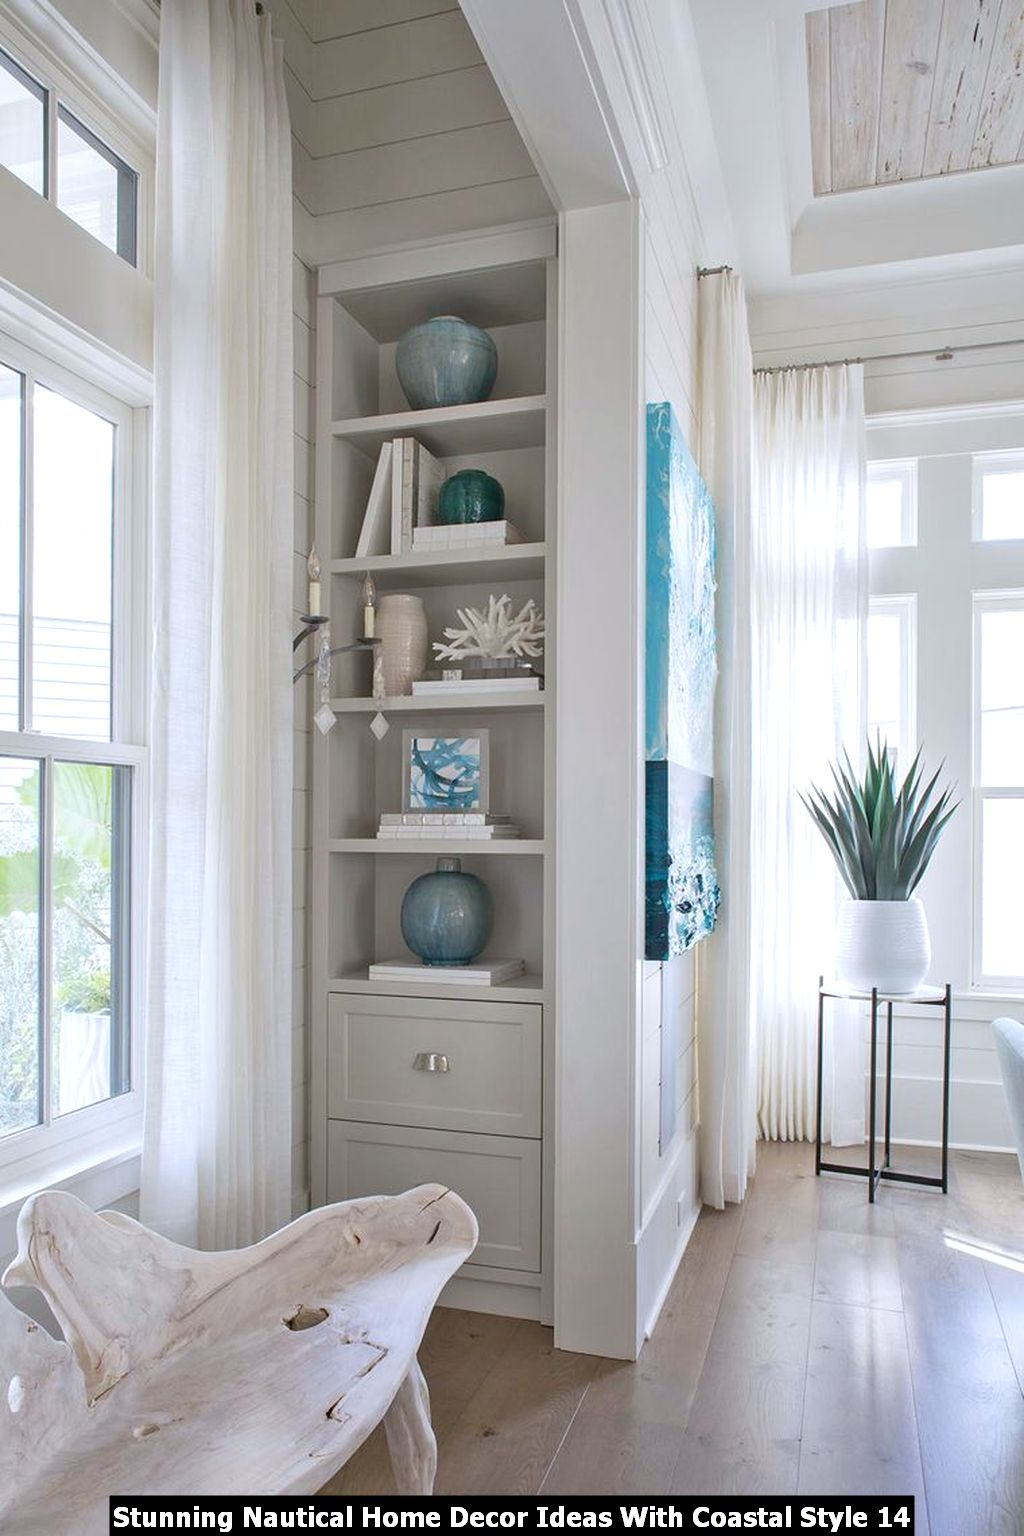 Stunning Nautical Home Decor Ideas With Coastal Style 14